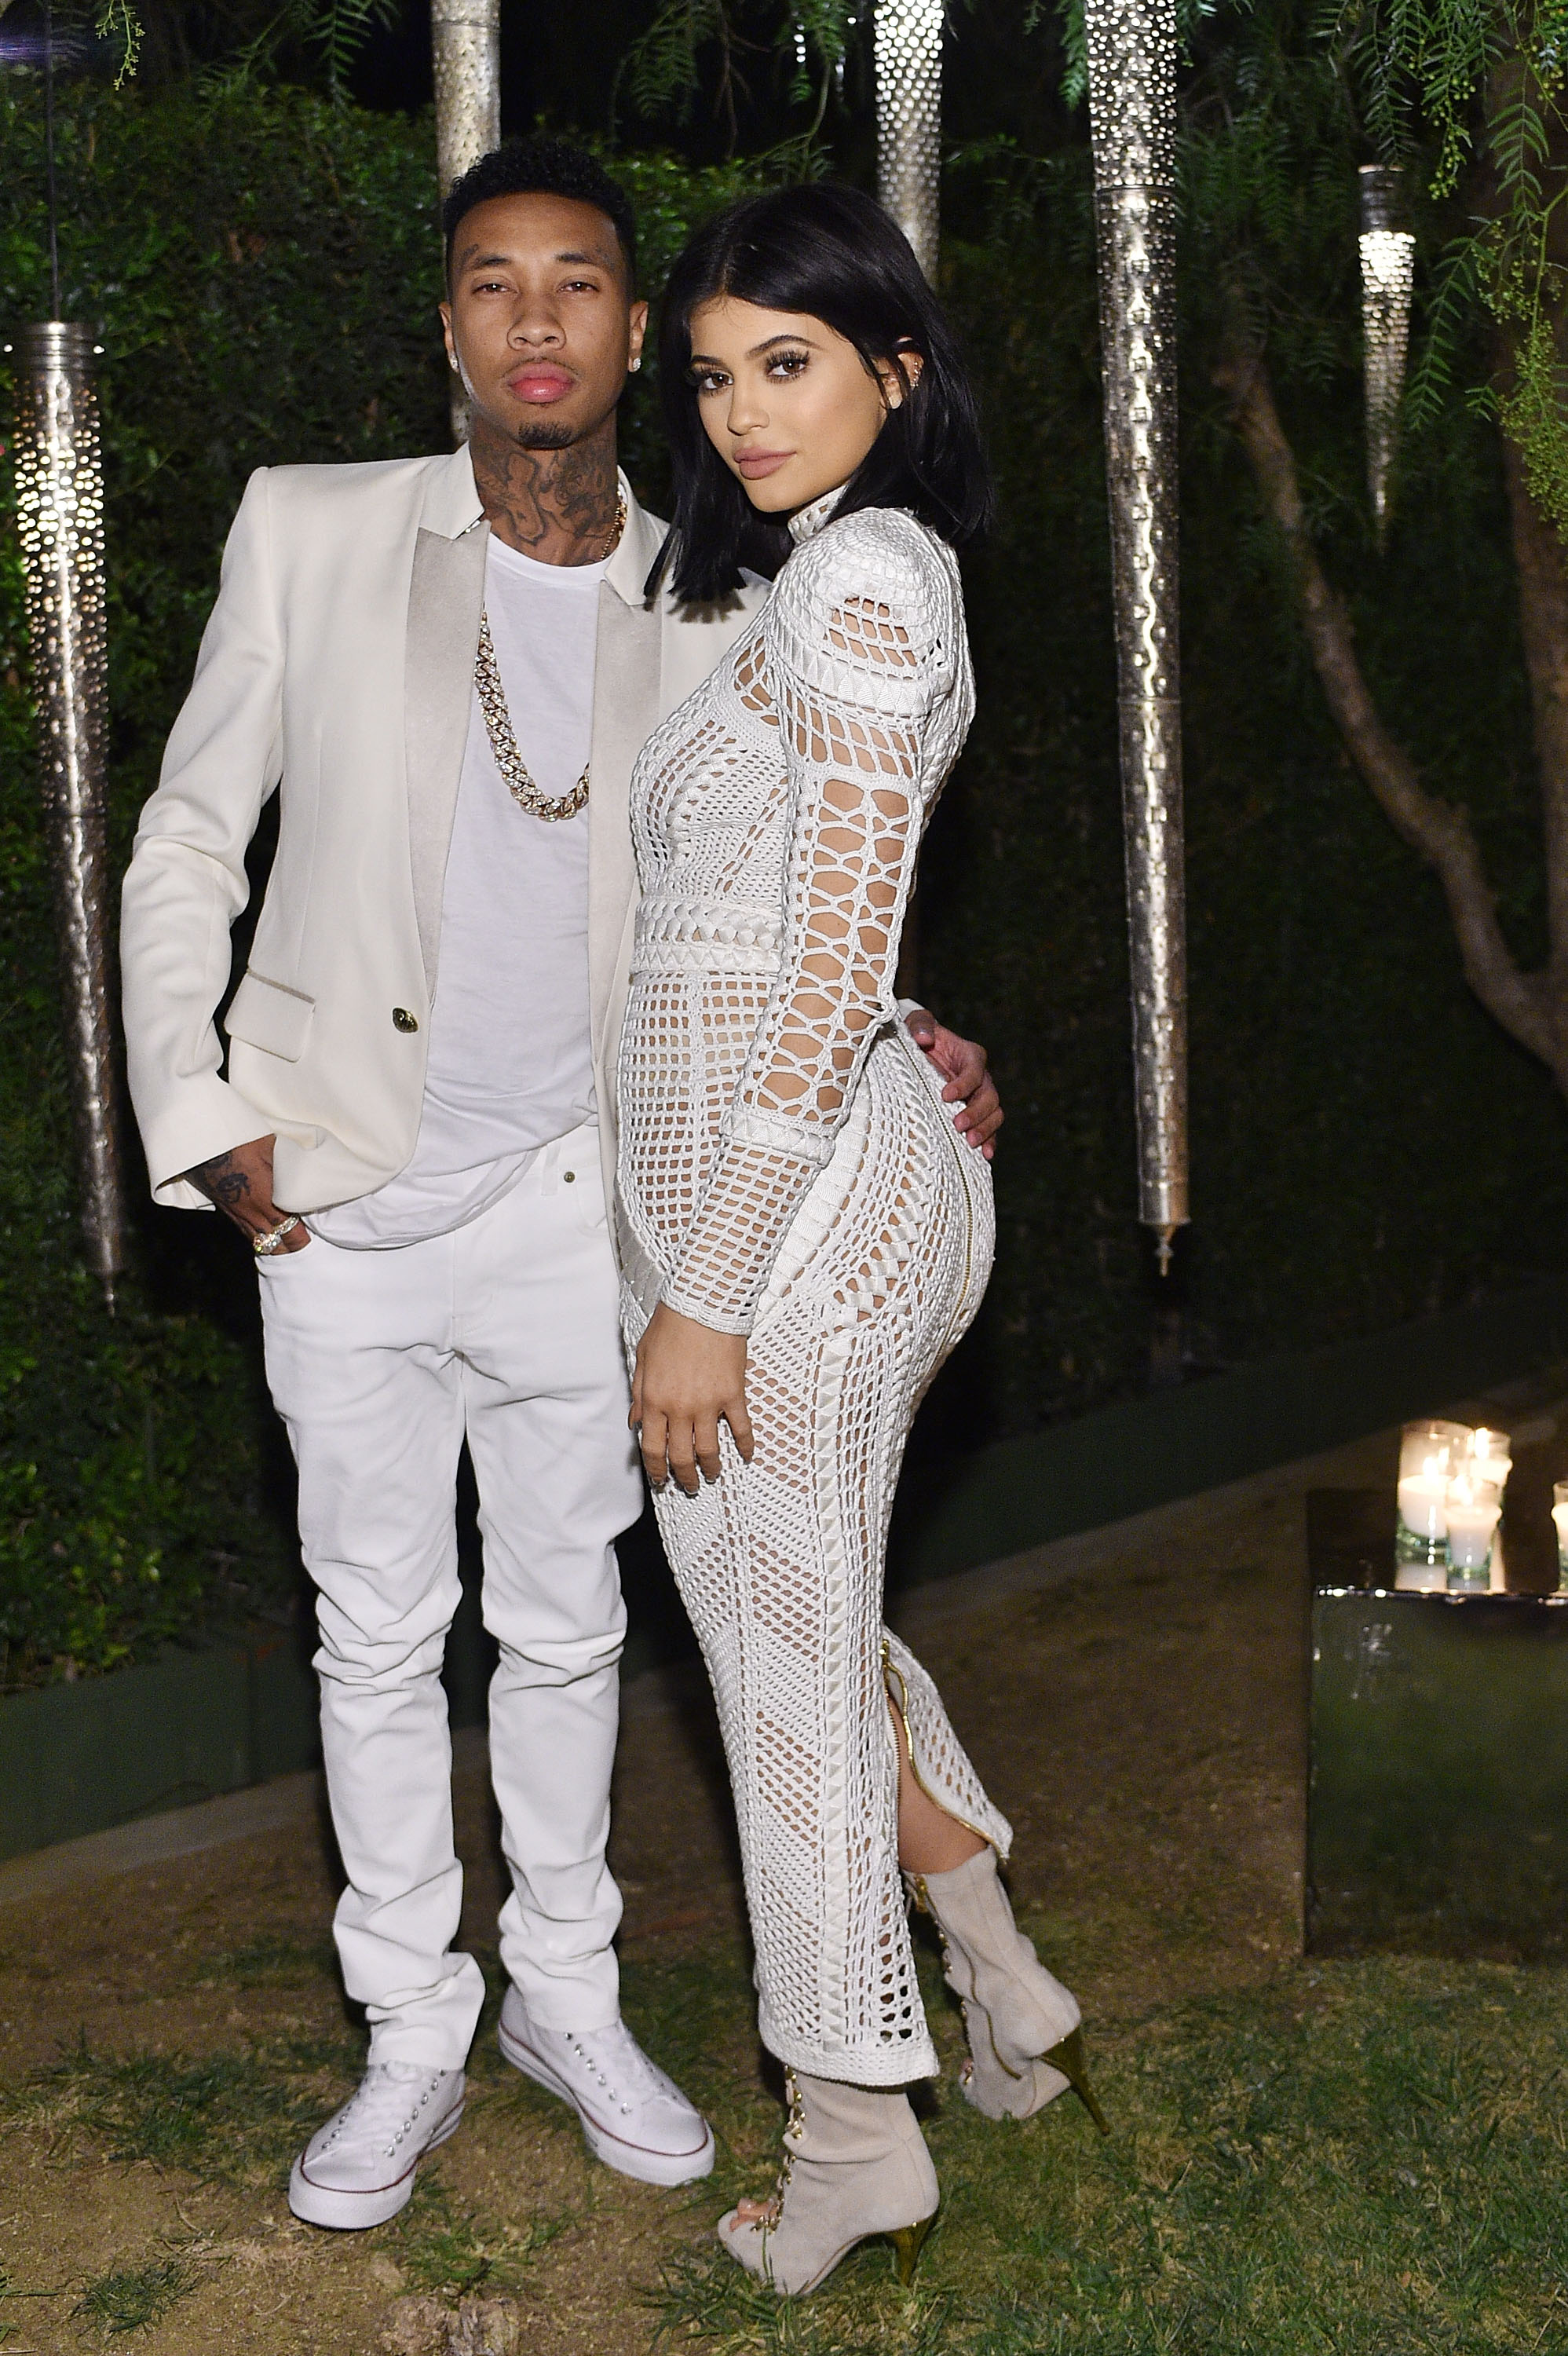 kylie-jenner-and-tyga-2015-getty